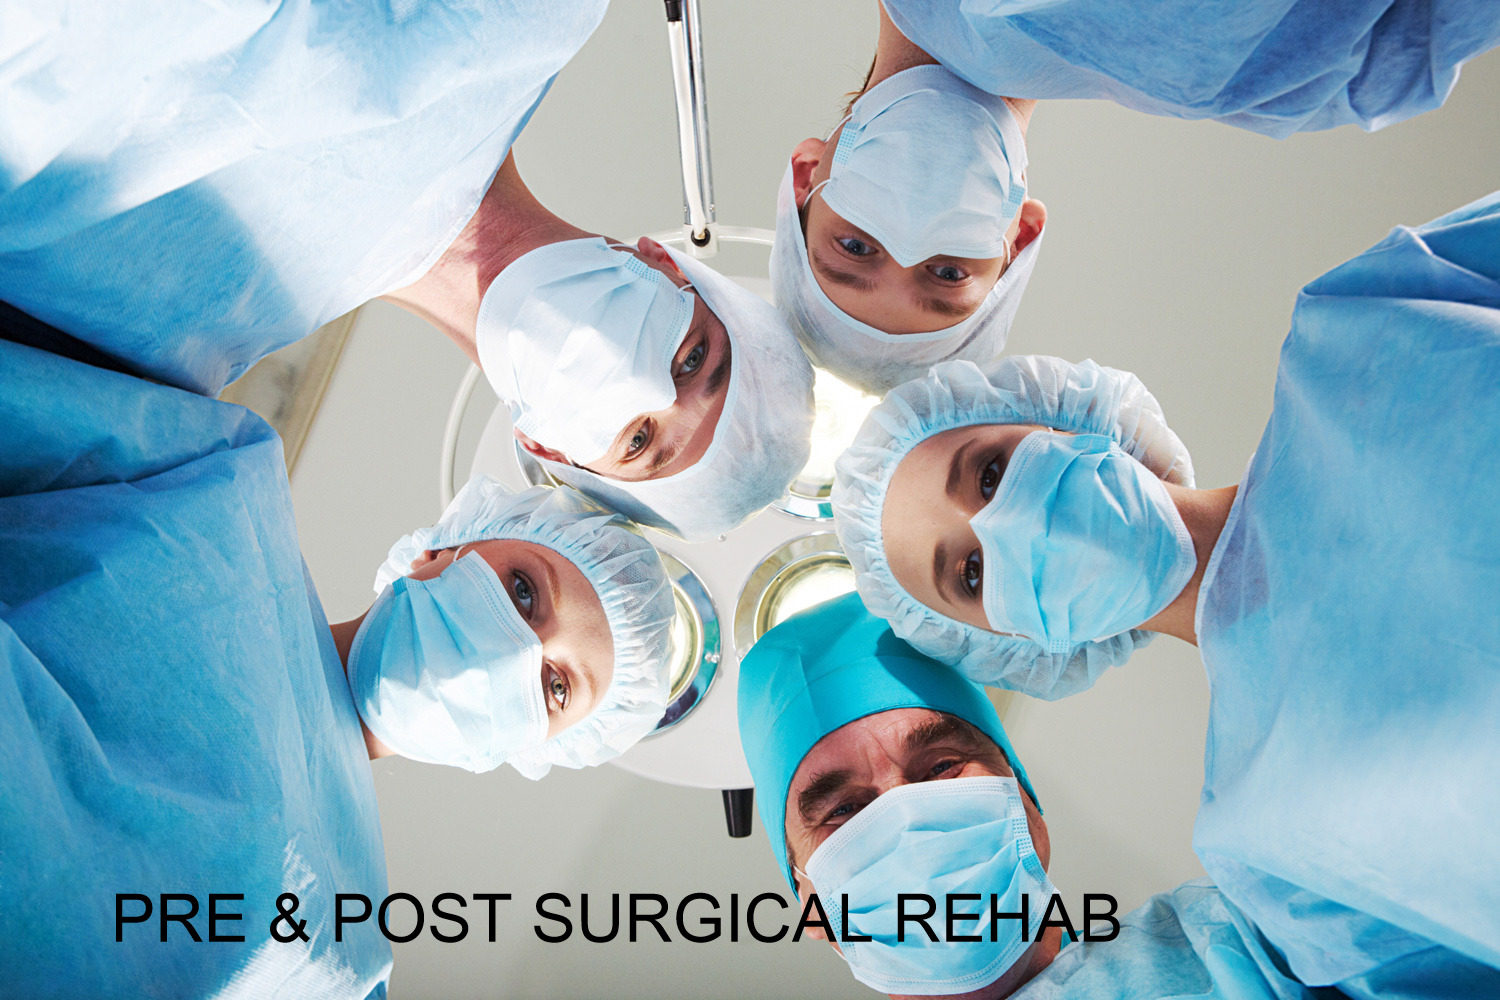 Pre & Post Surgical Rehab